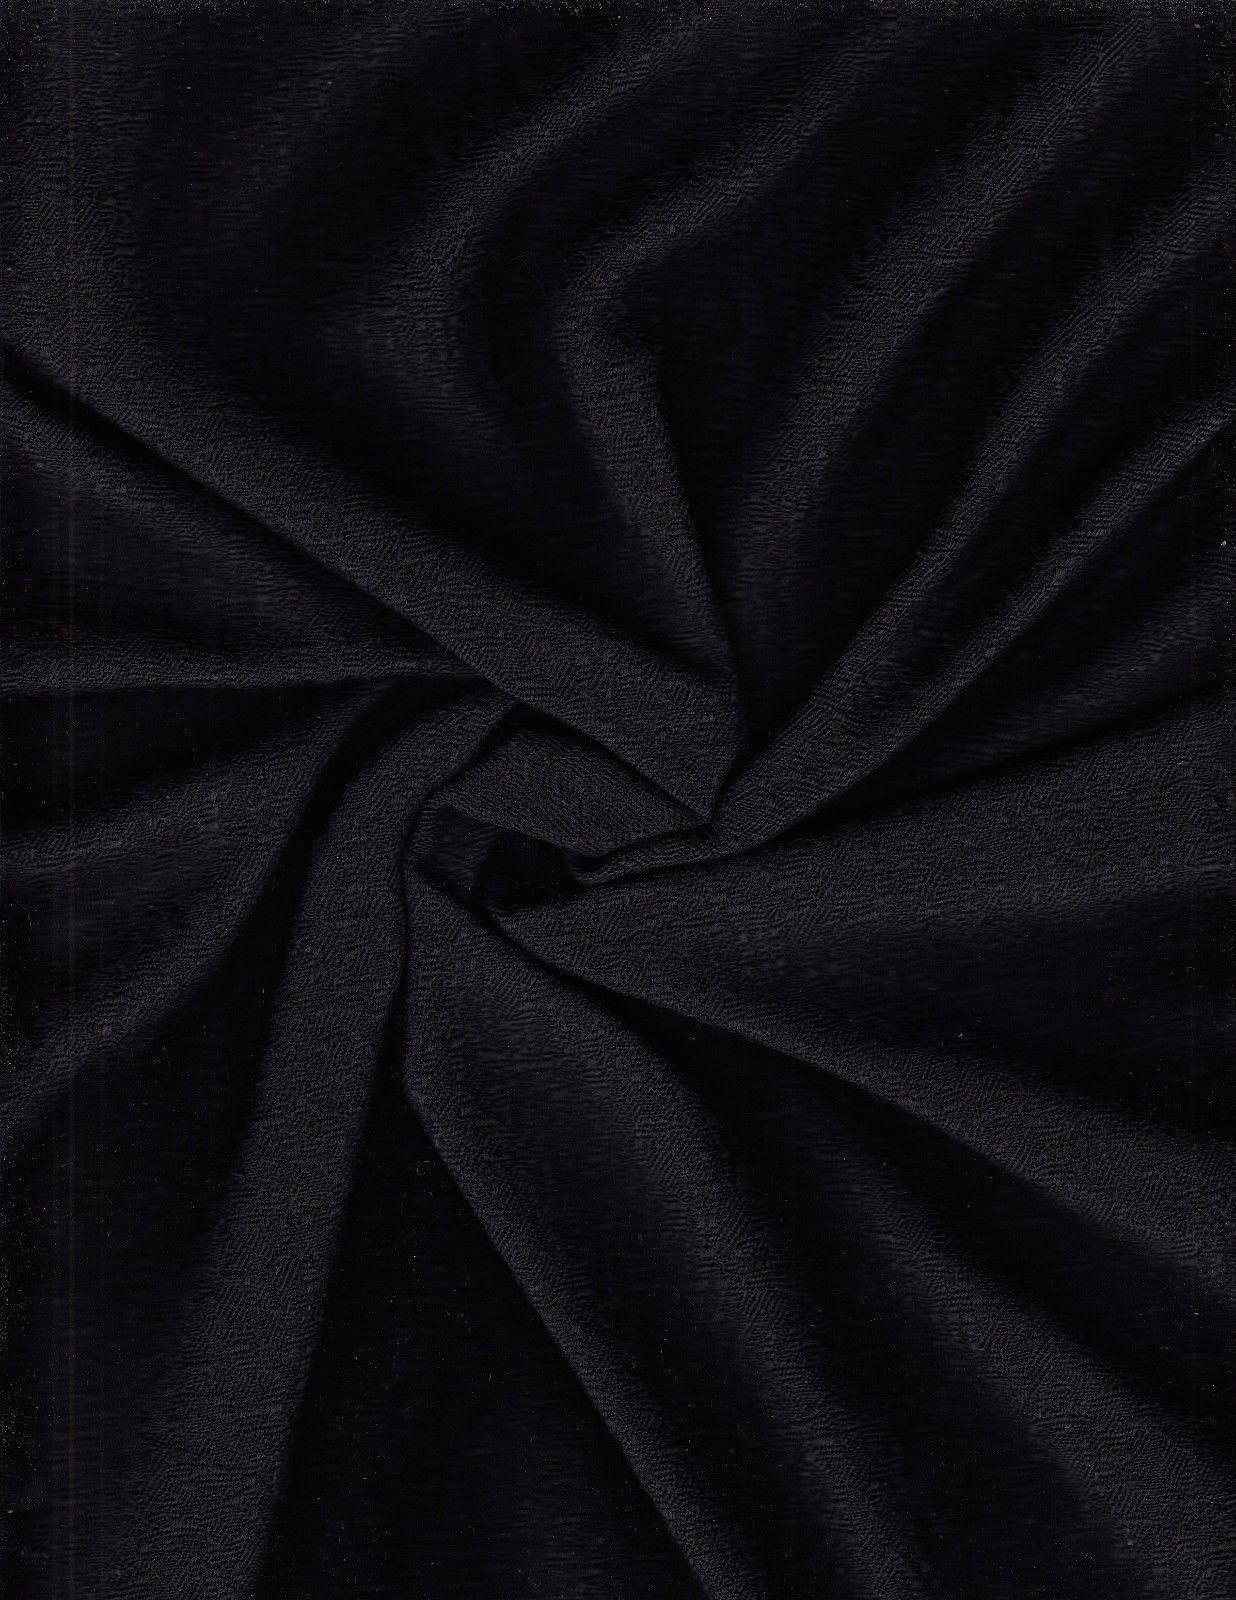 7 yds Geiger Upholstery Fabric Wool Texture Terrain Night Sky Black CA-c7